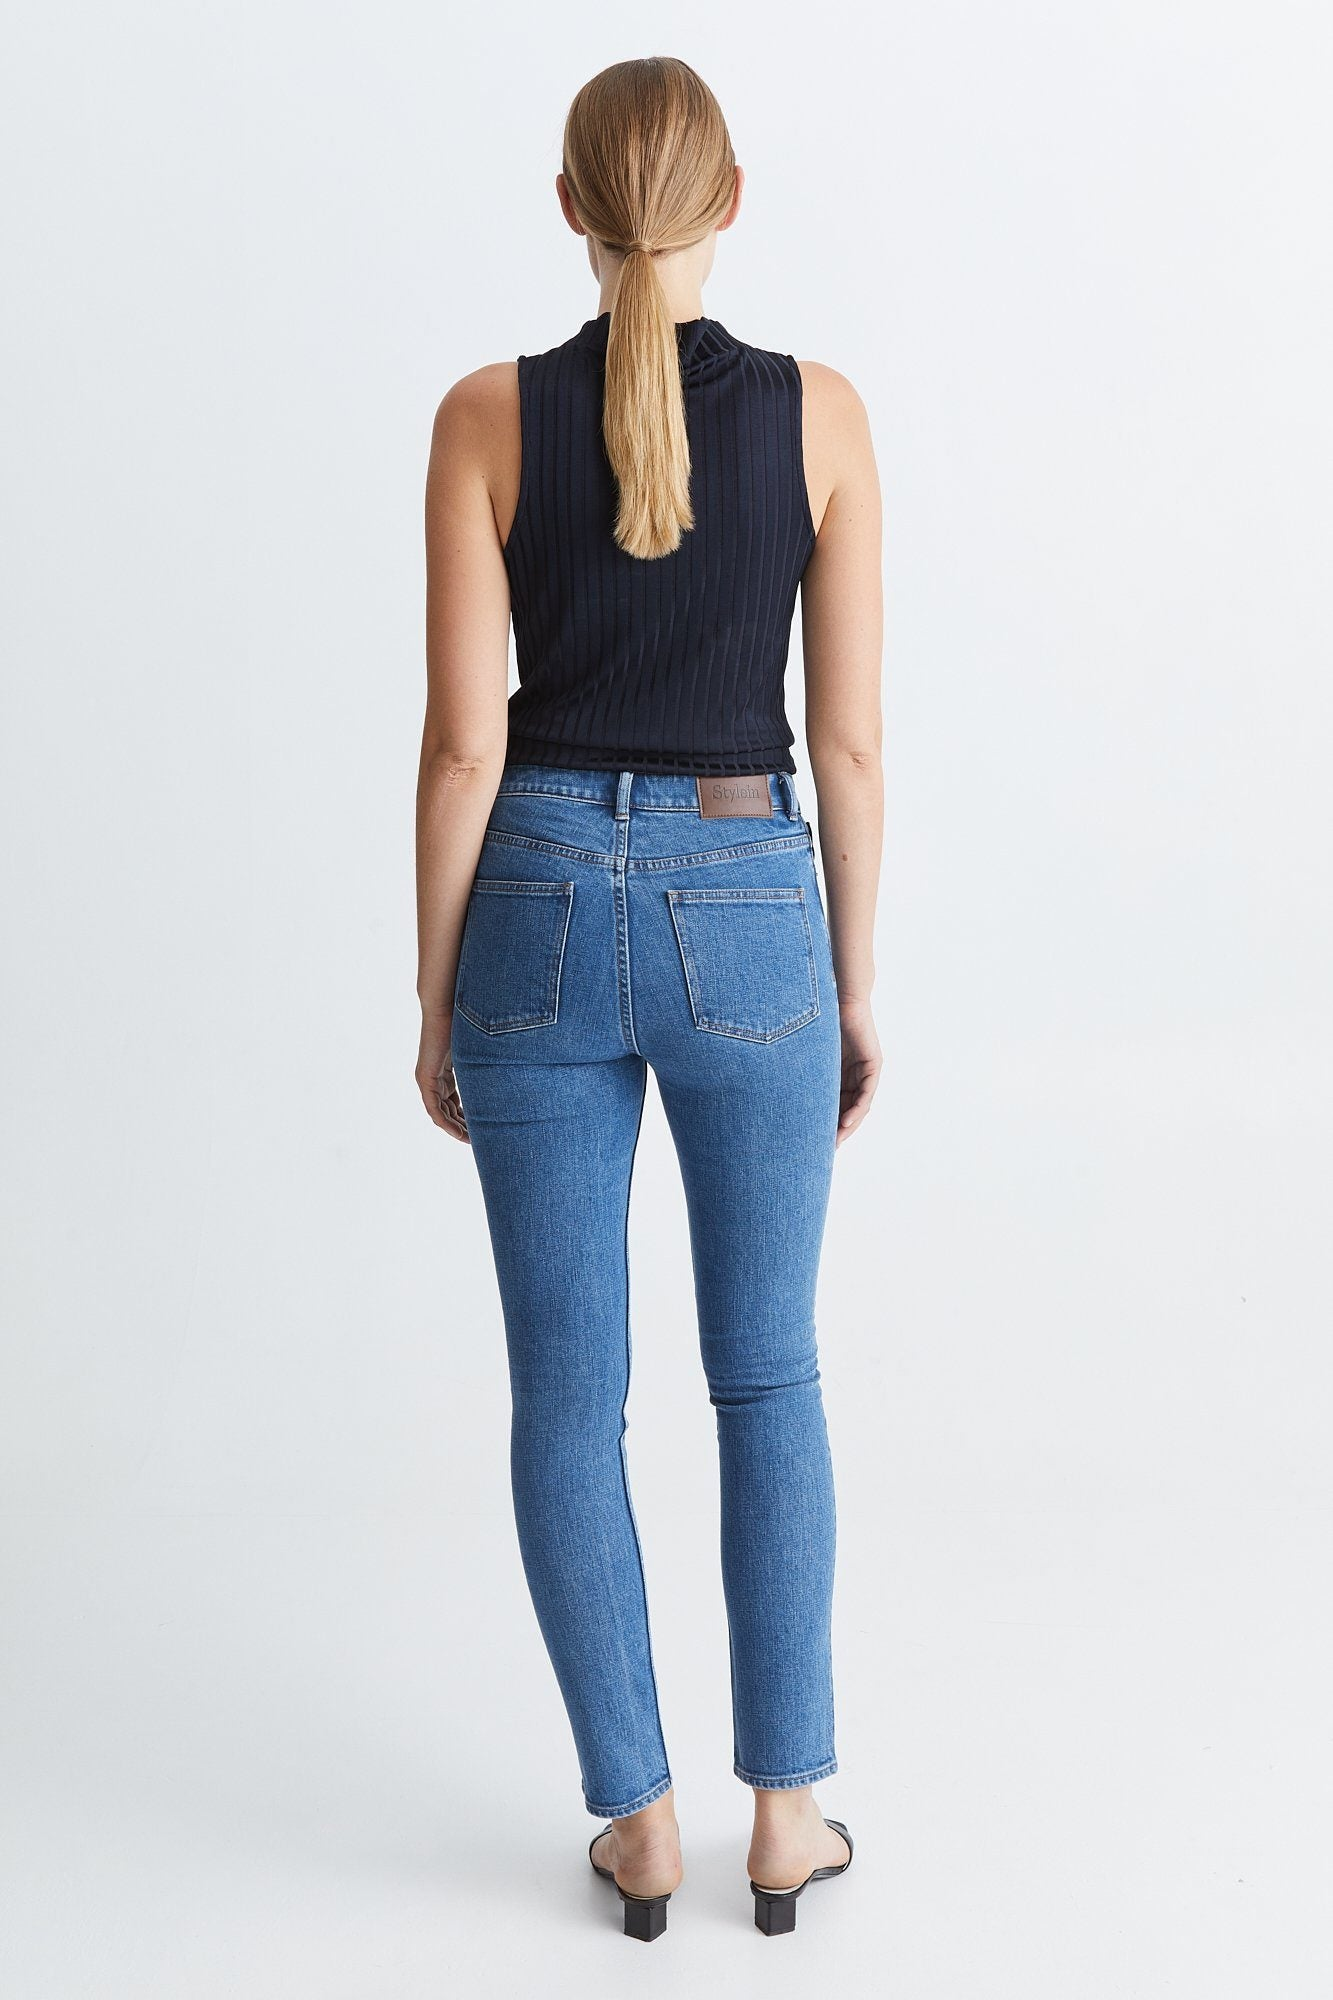 PAGE TOP - NAVY Top Stylein